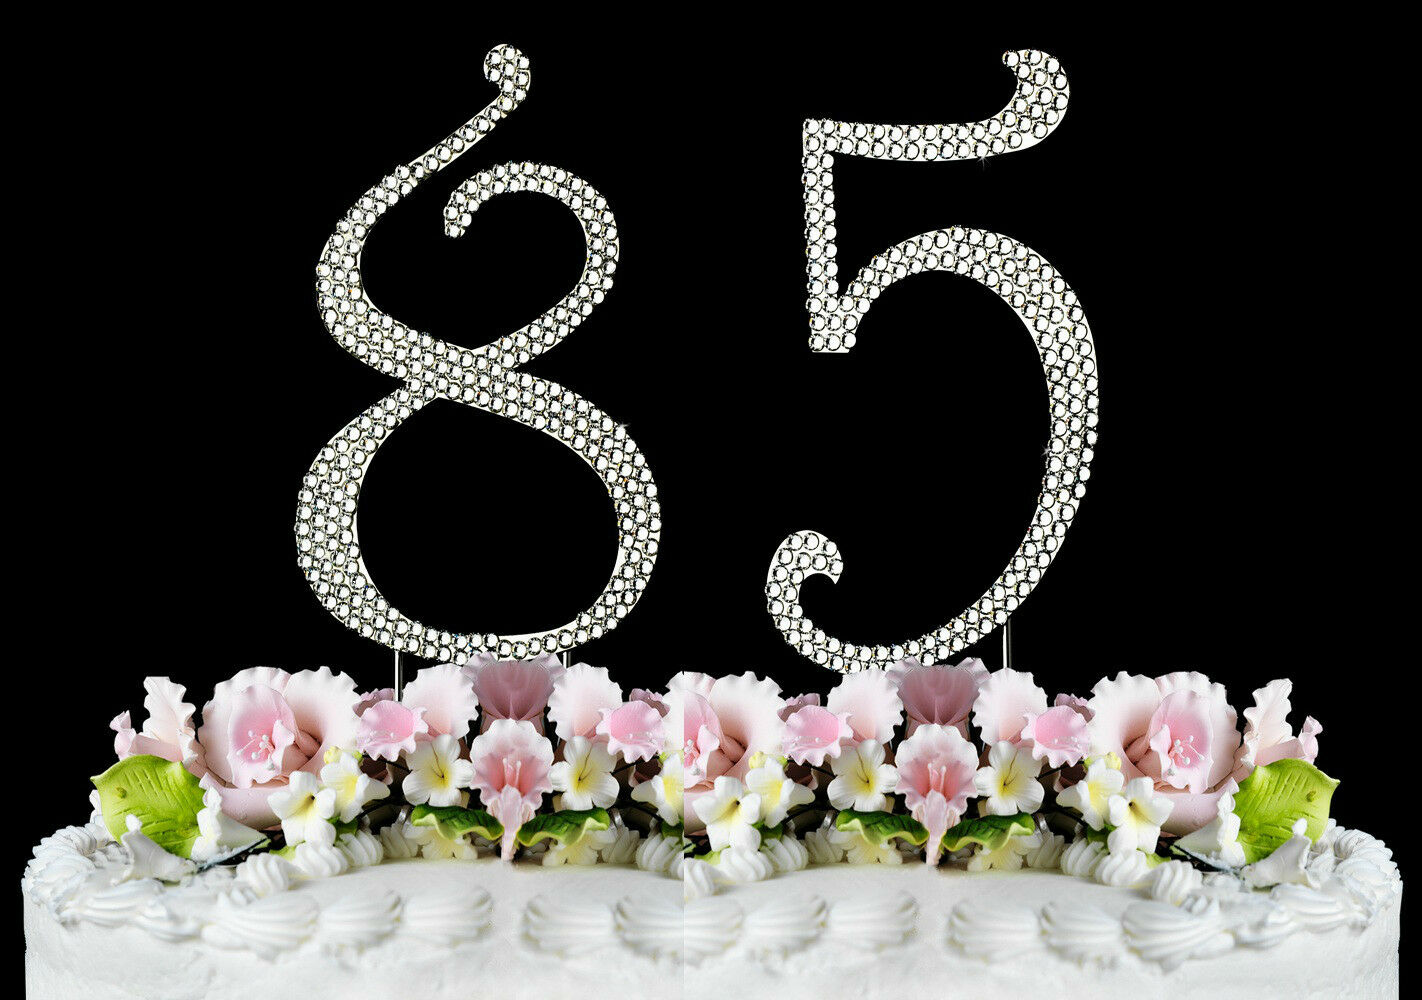 Large Rhinestone Number 85 Cake Topper 85th Birthday Party